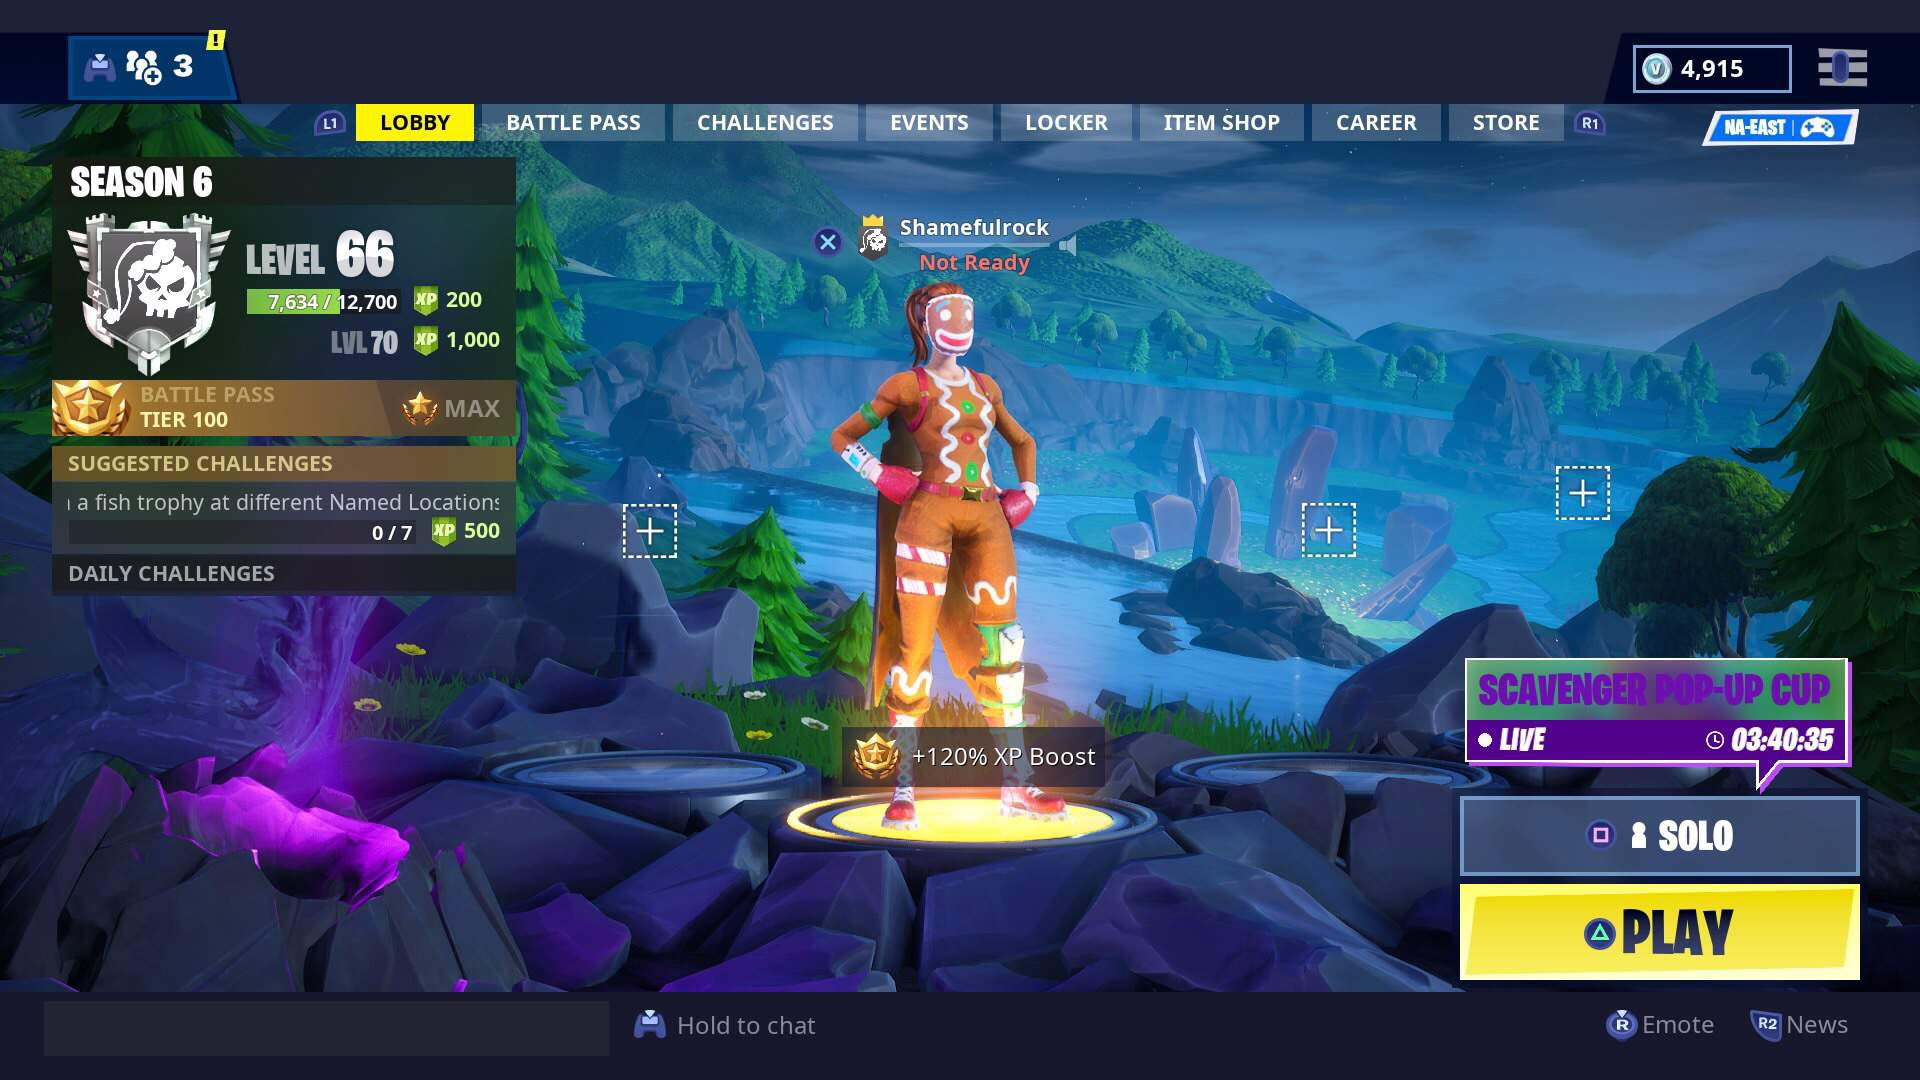 Como Tener Shirt En Roblox Sin Robux 免费在线视频最佳电影 Roblox Fortnite Emotes Sycn Myths Boogie Down Dance How To Get Free Items In Roblox On Mobile